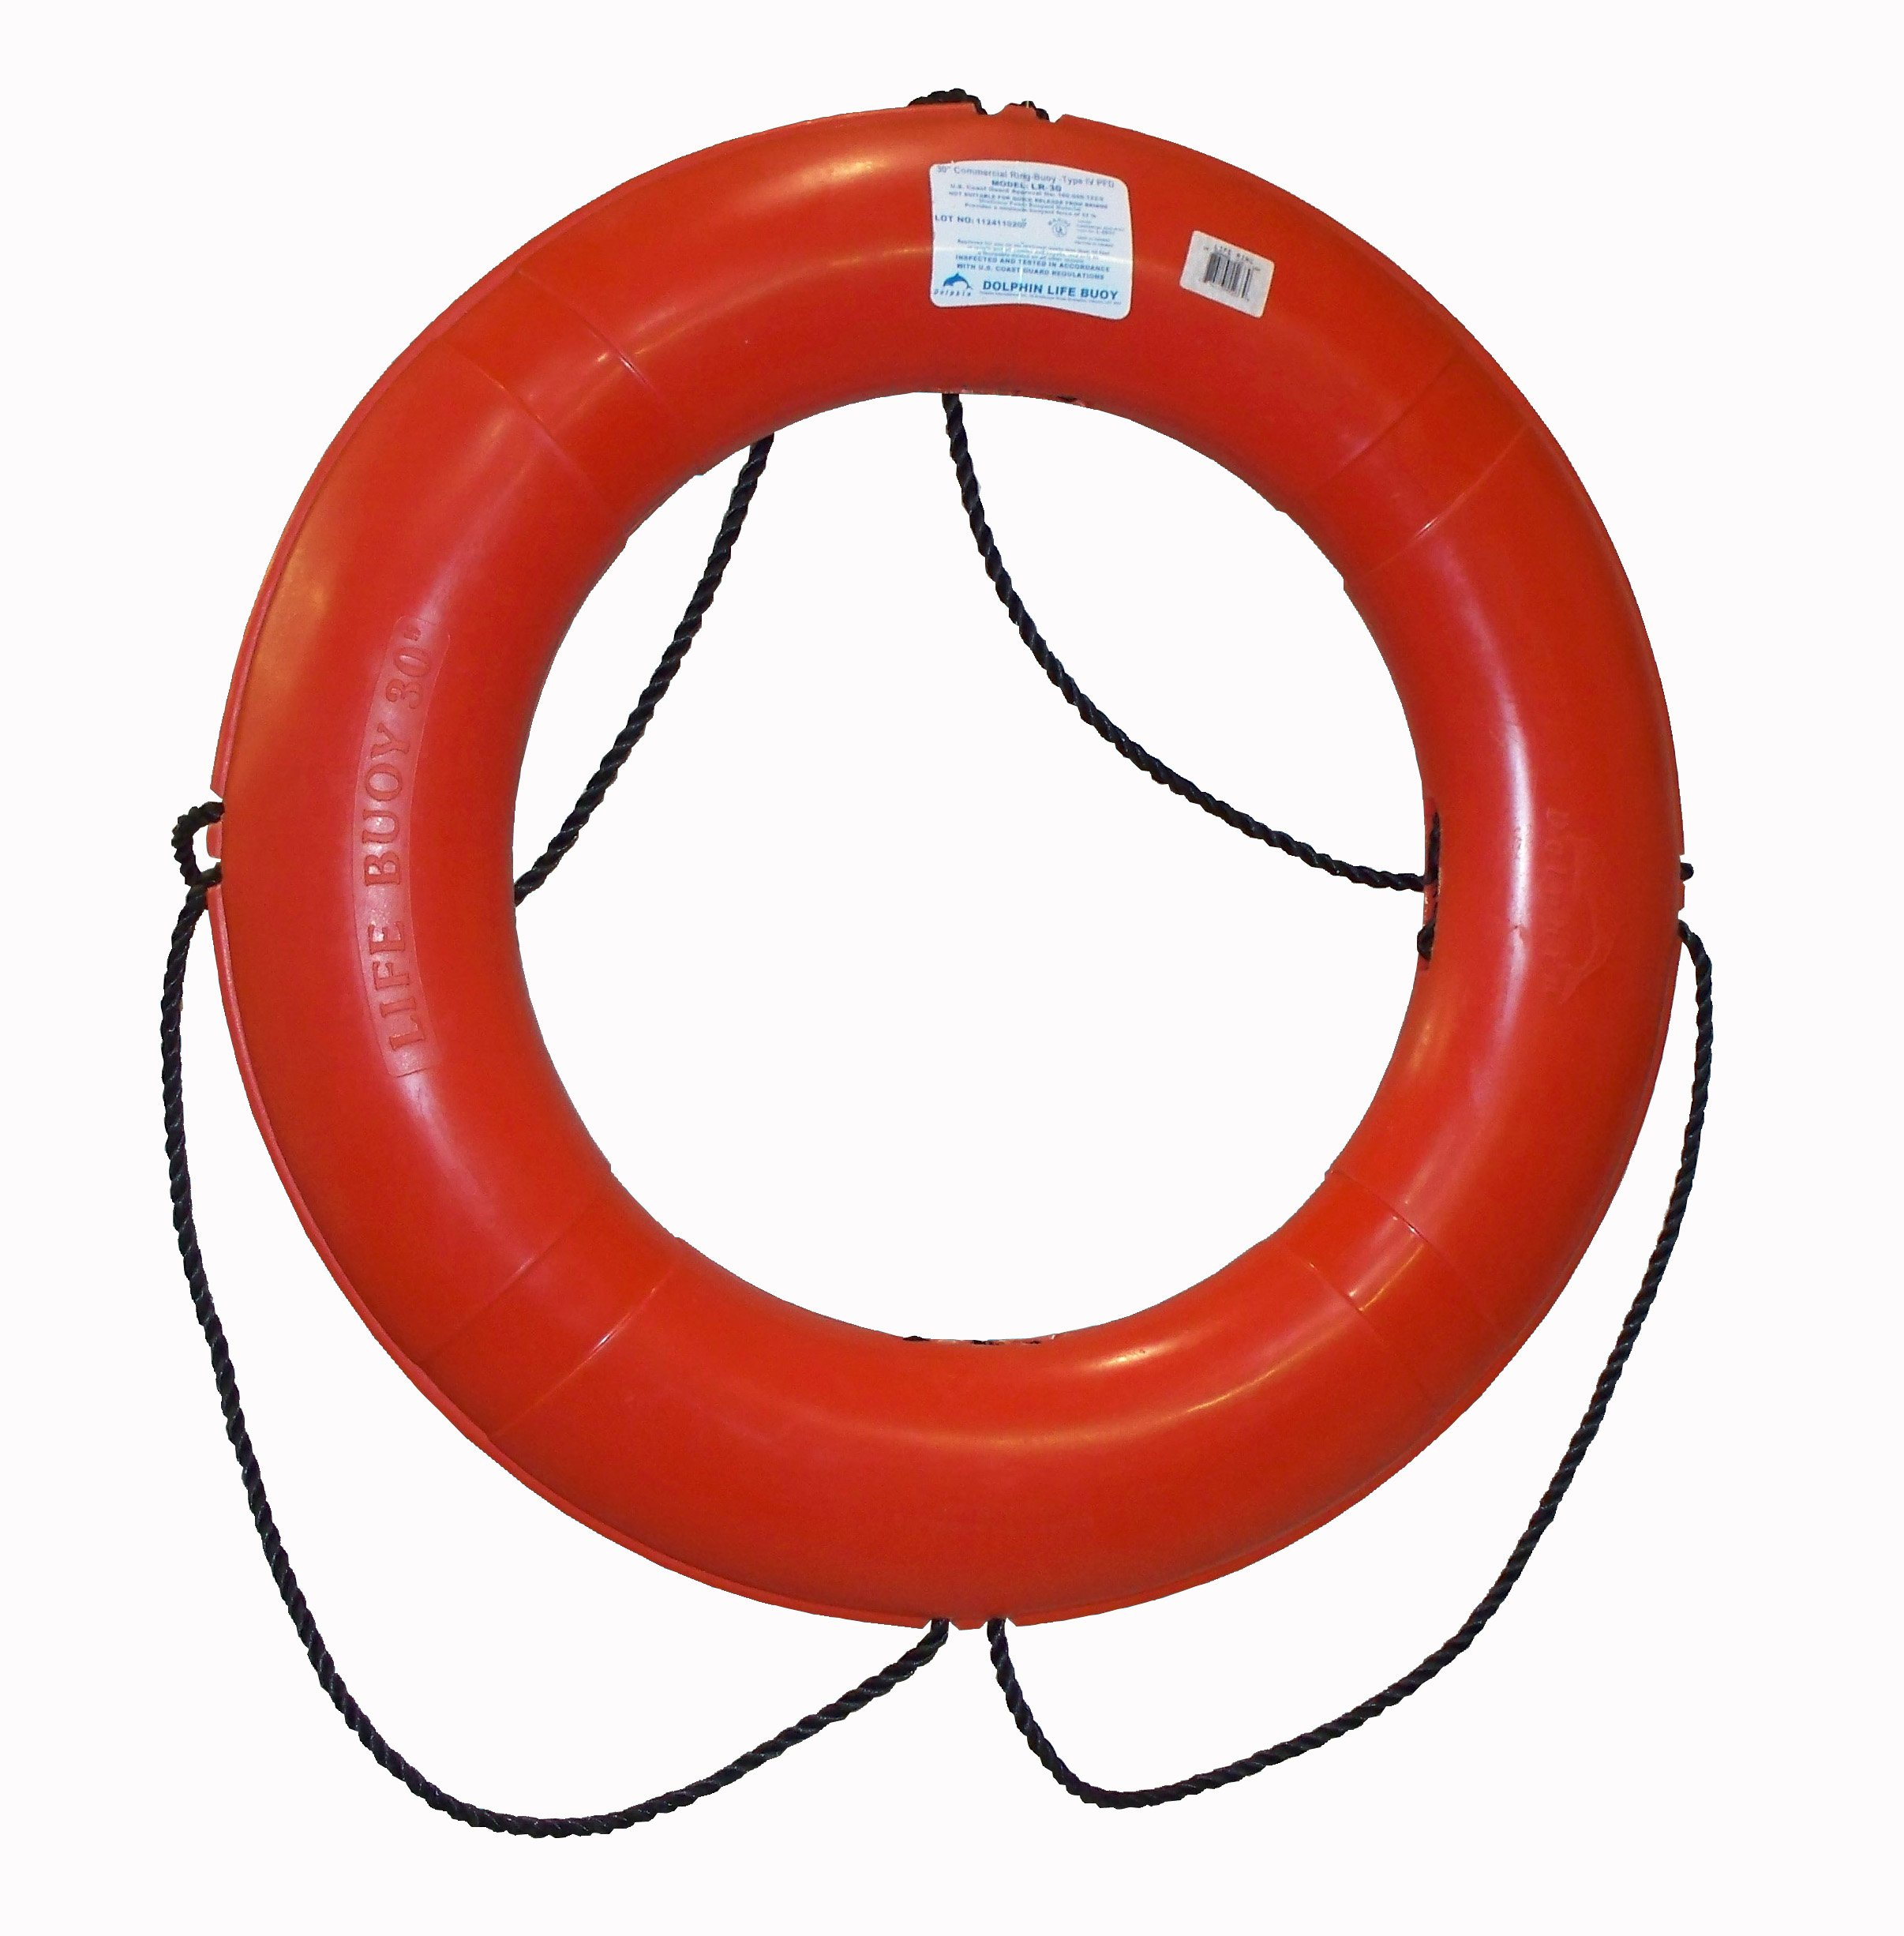 Dock Edge + Inc. USCGA Approved Commercial Life Ring Buoy, 30'' by Dock Edge (Image #1)